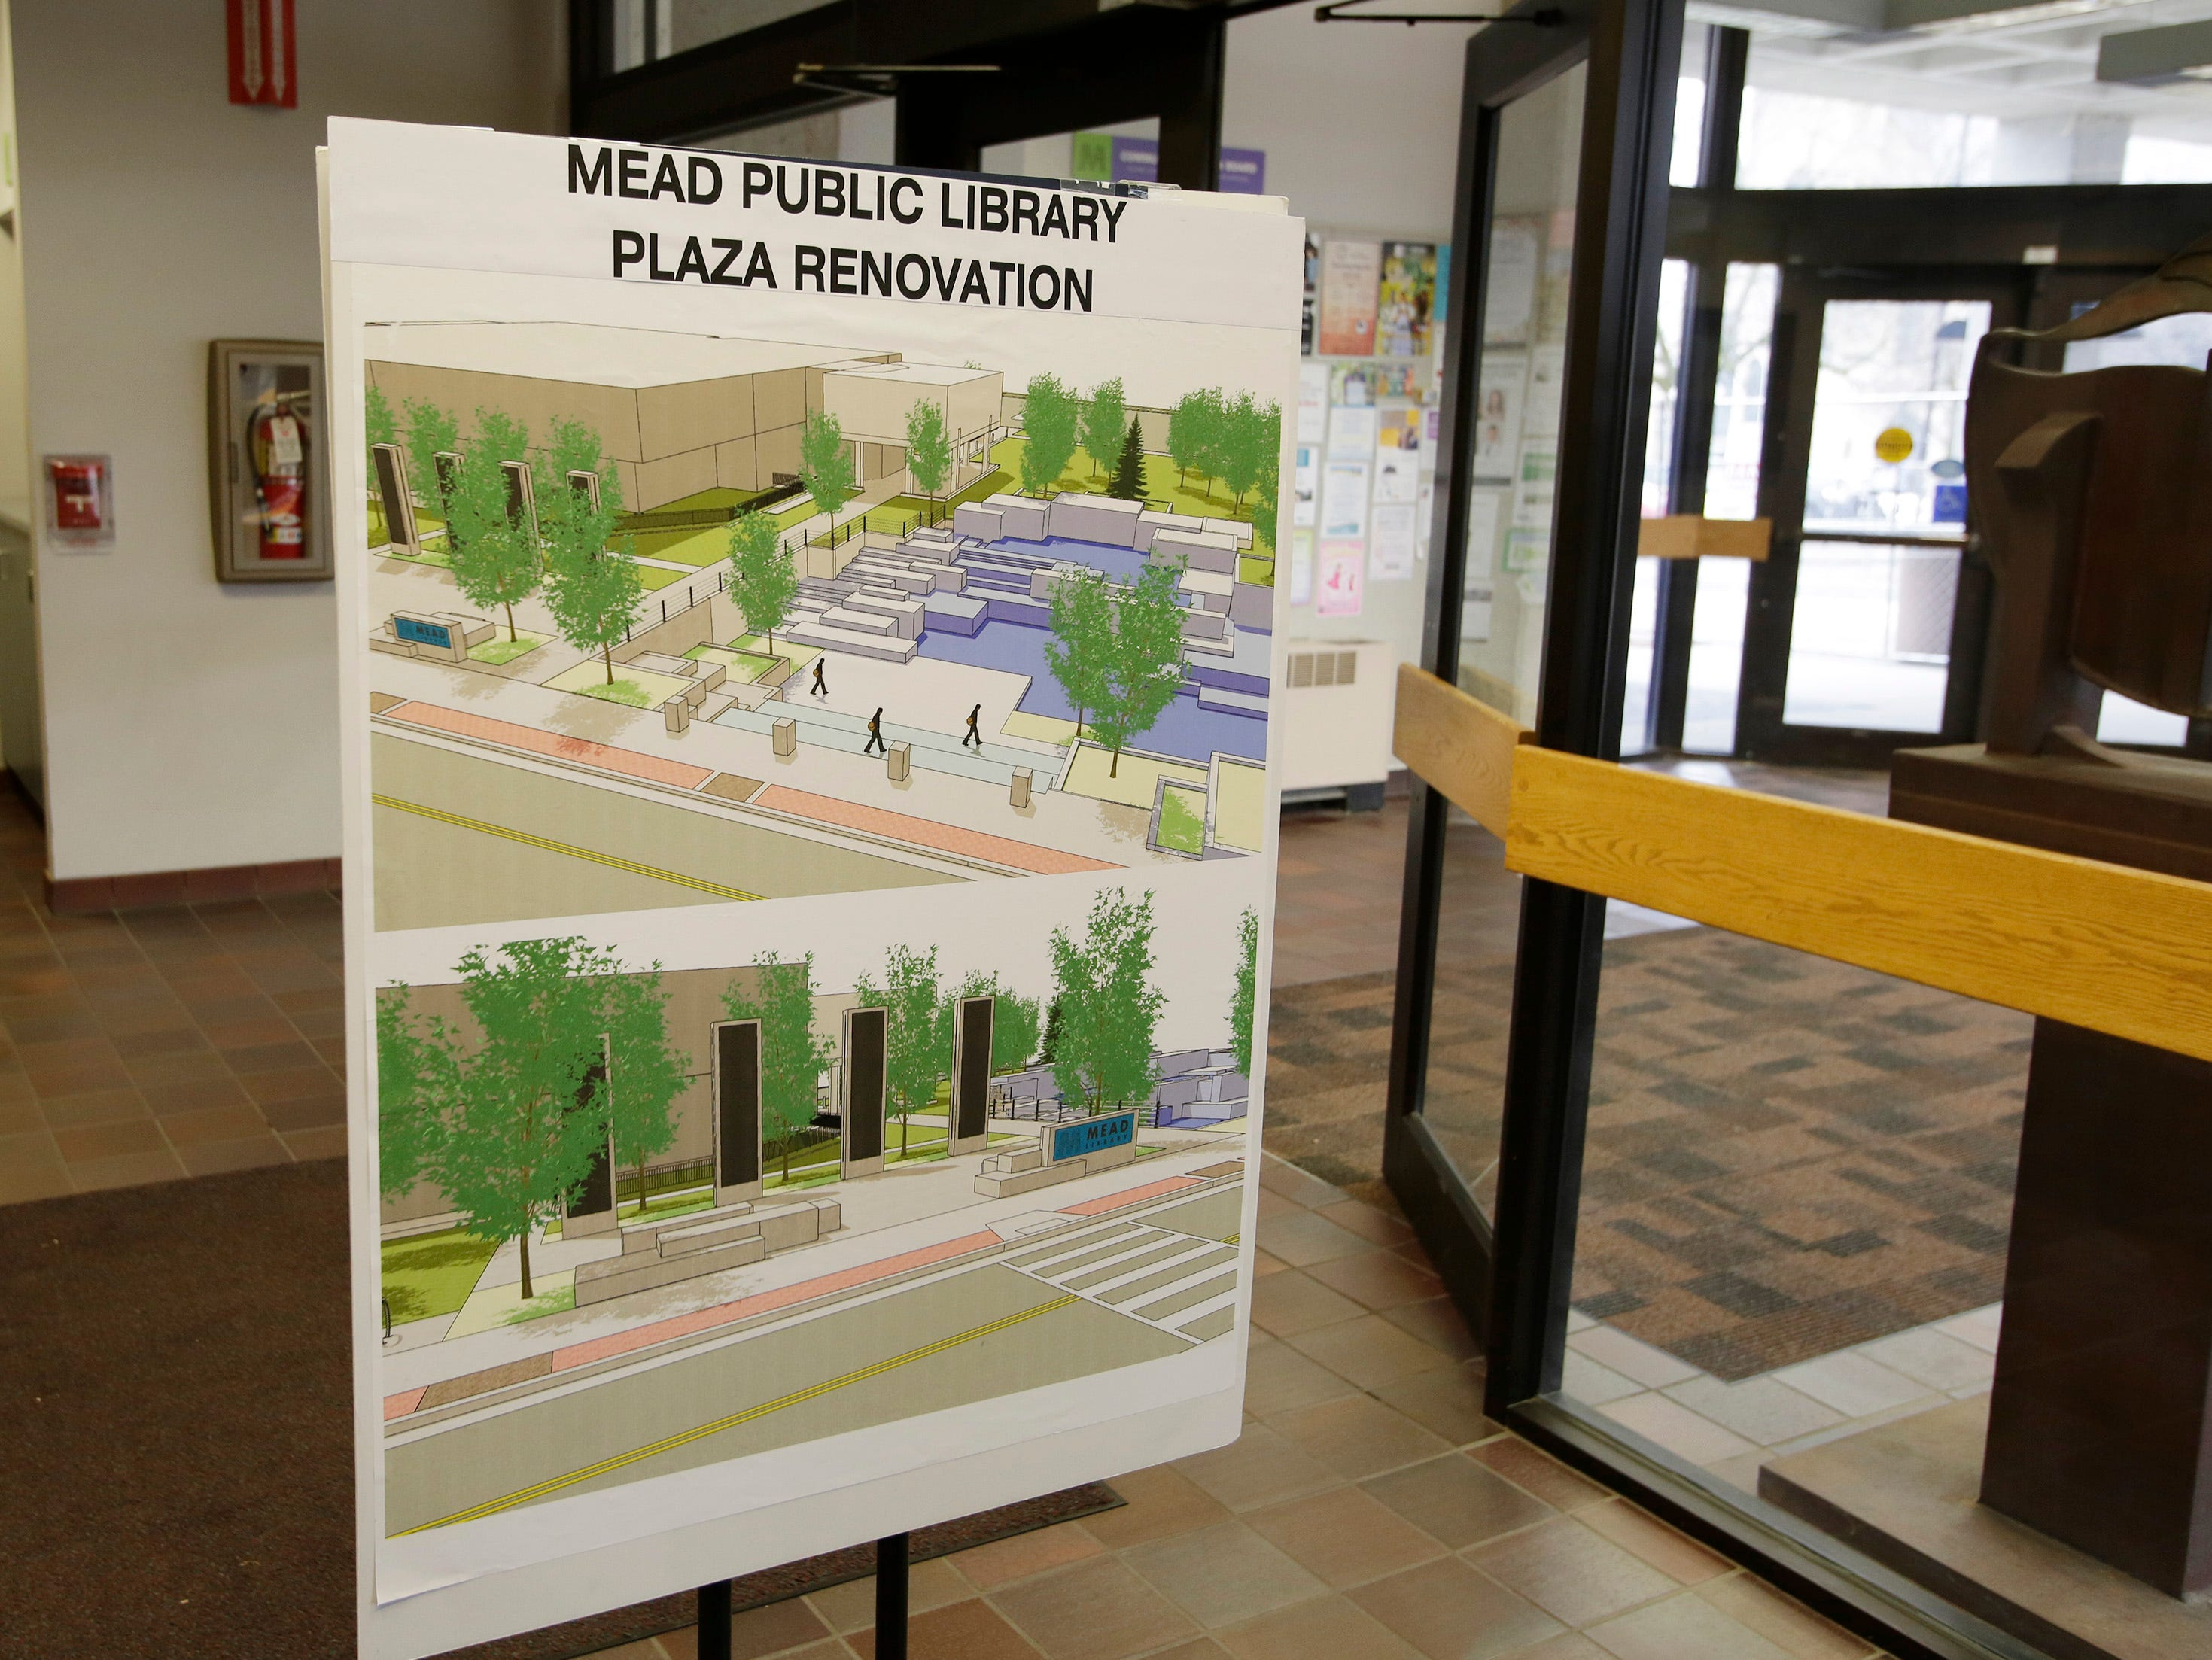 A diagram of the renovation work being performed on the Mead Public Library Plaza, Wednesday, May 1, 2019, in Sheboygan, Wis.